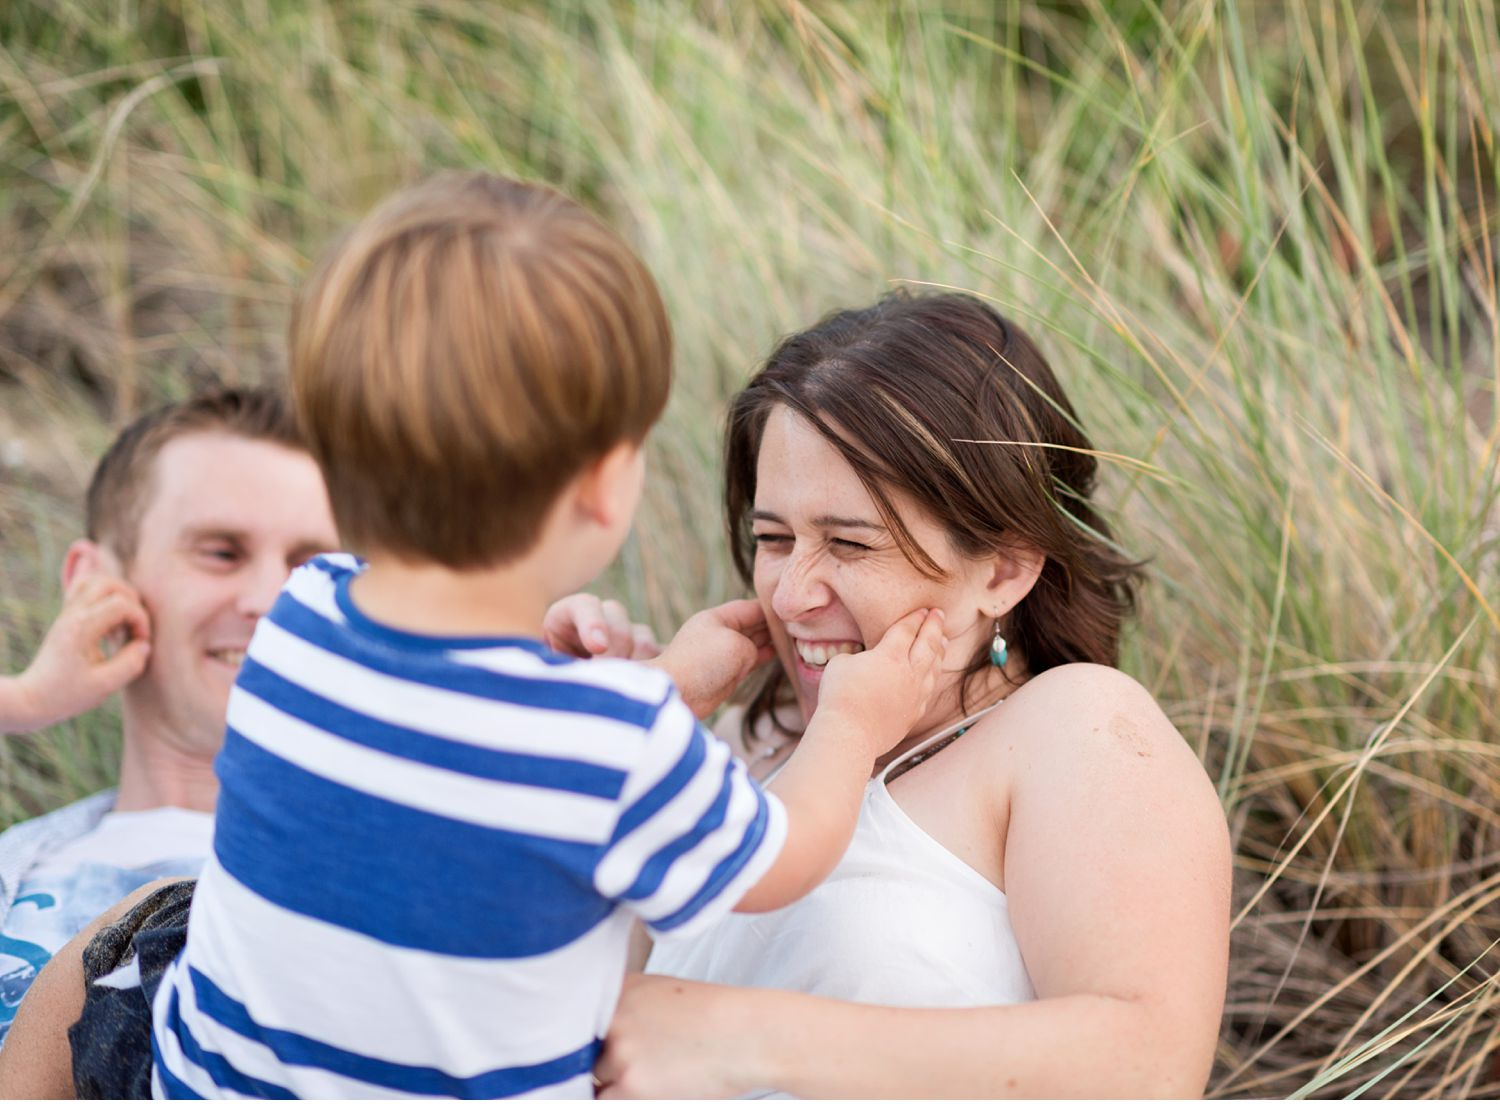 True-family-moments-photography-melbourne.jpg